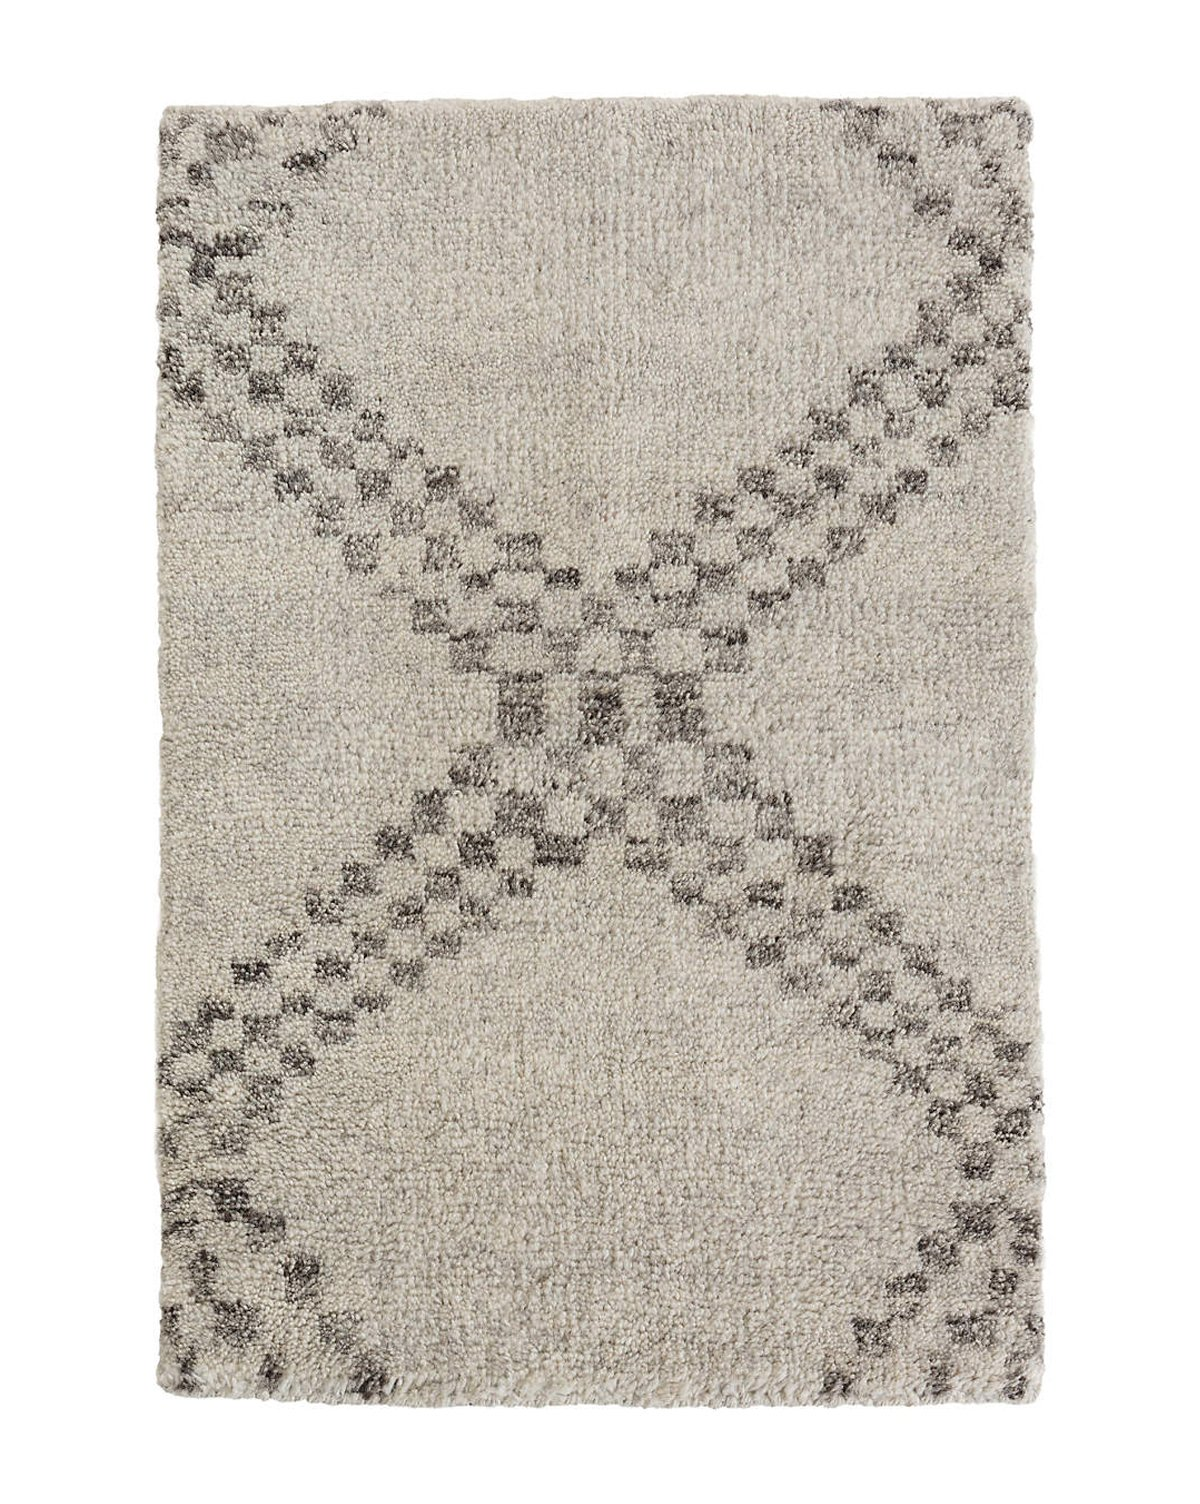 Zillah Hand-Knotted Rug